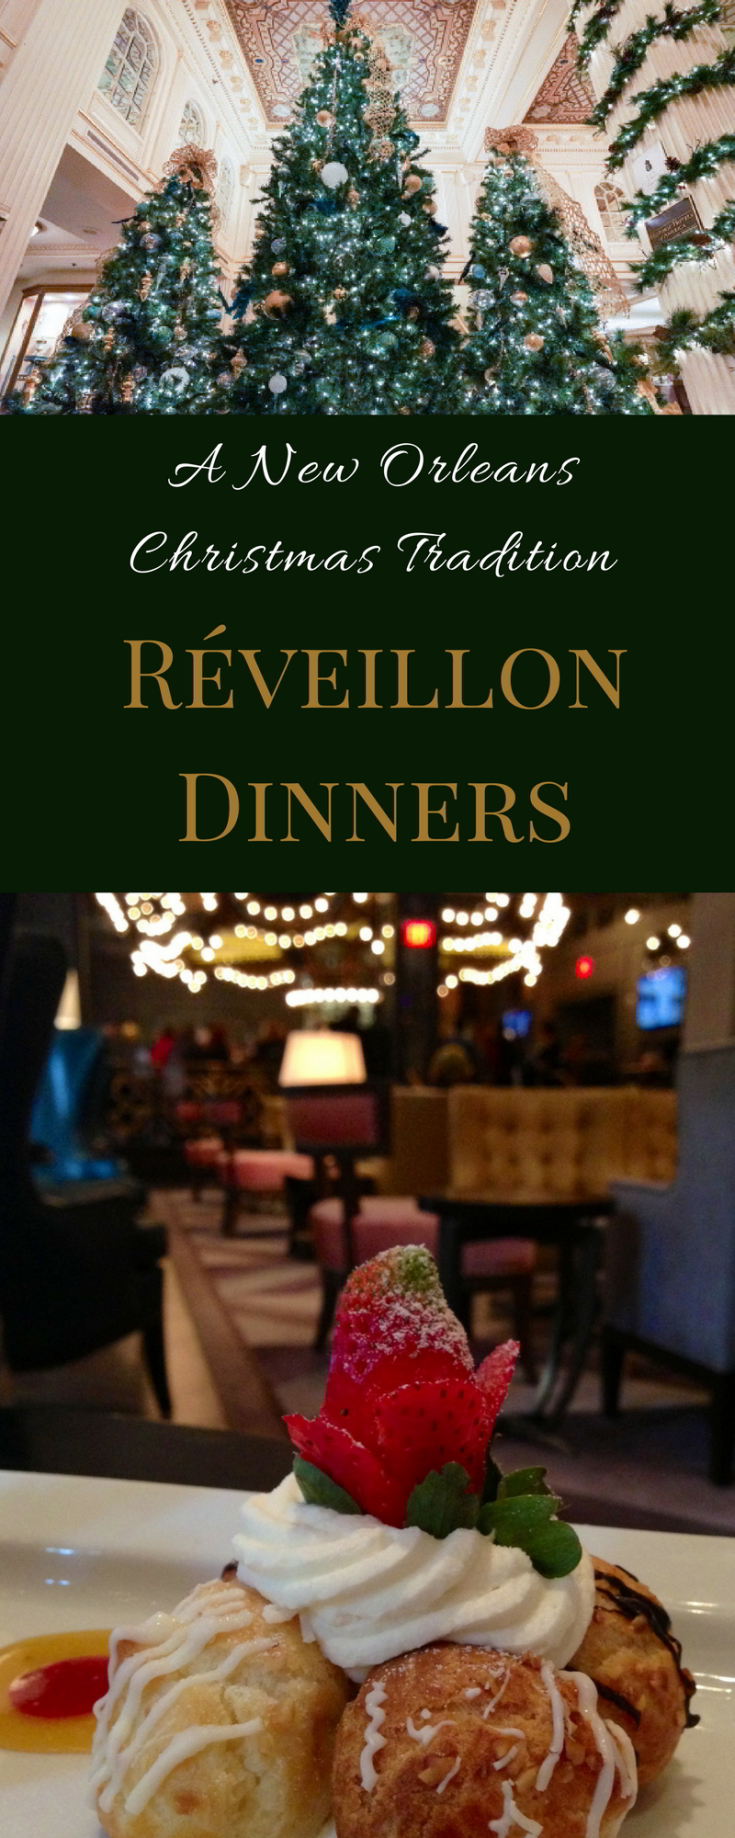 Réveillon Dinners in New Orleans are a historic holiday tradition, dating back to the 19th century. Enjoy this Christmas celebration at Criollo Restaurant!